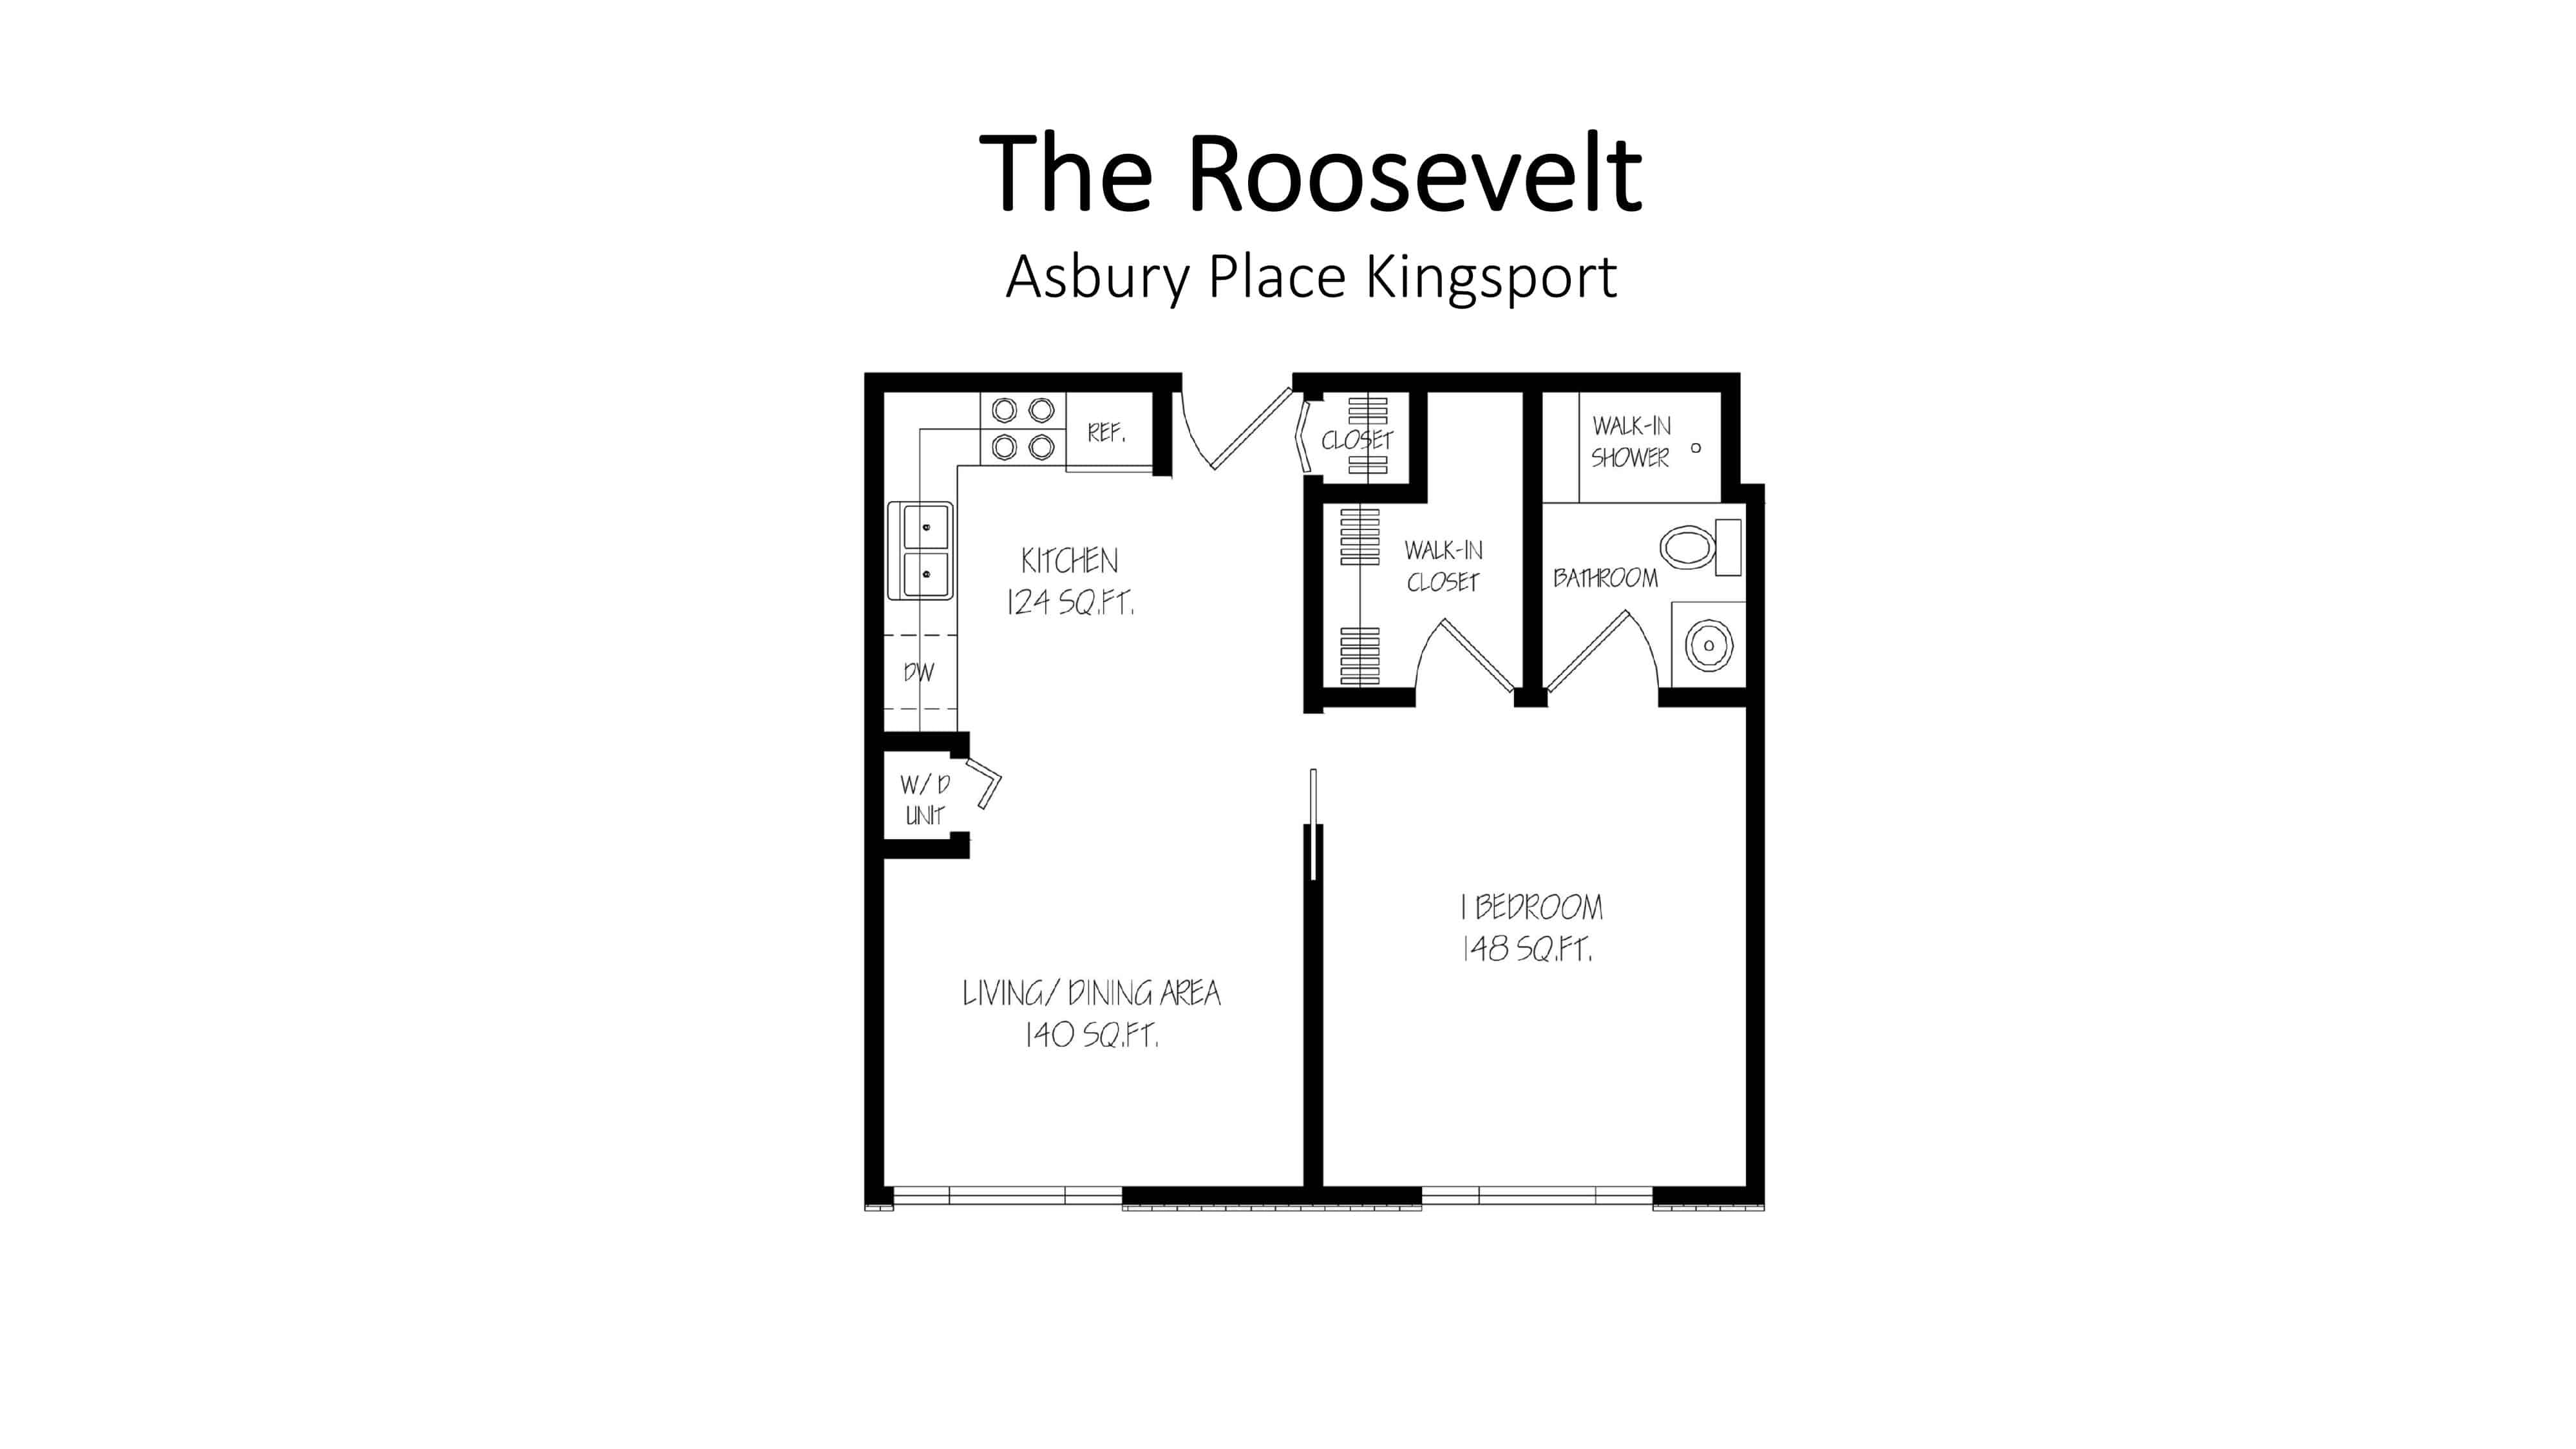 Asbury Place Kingsport The Roosevelt Floorplan